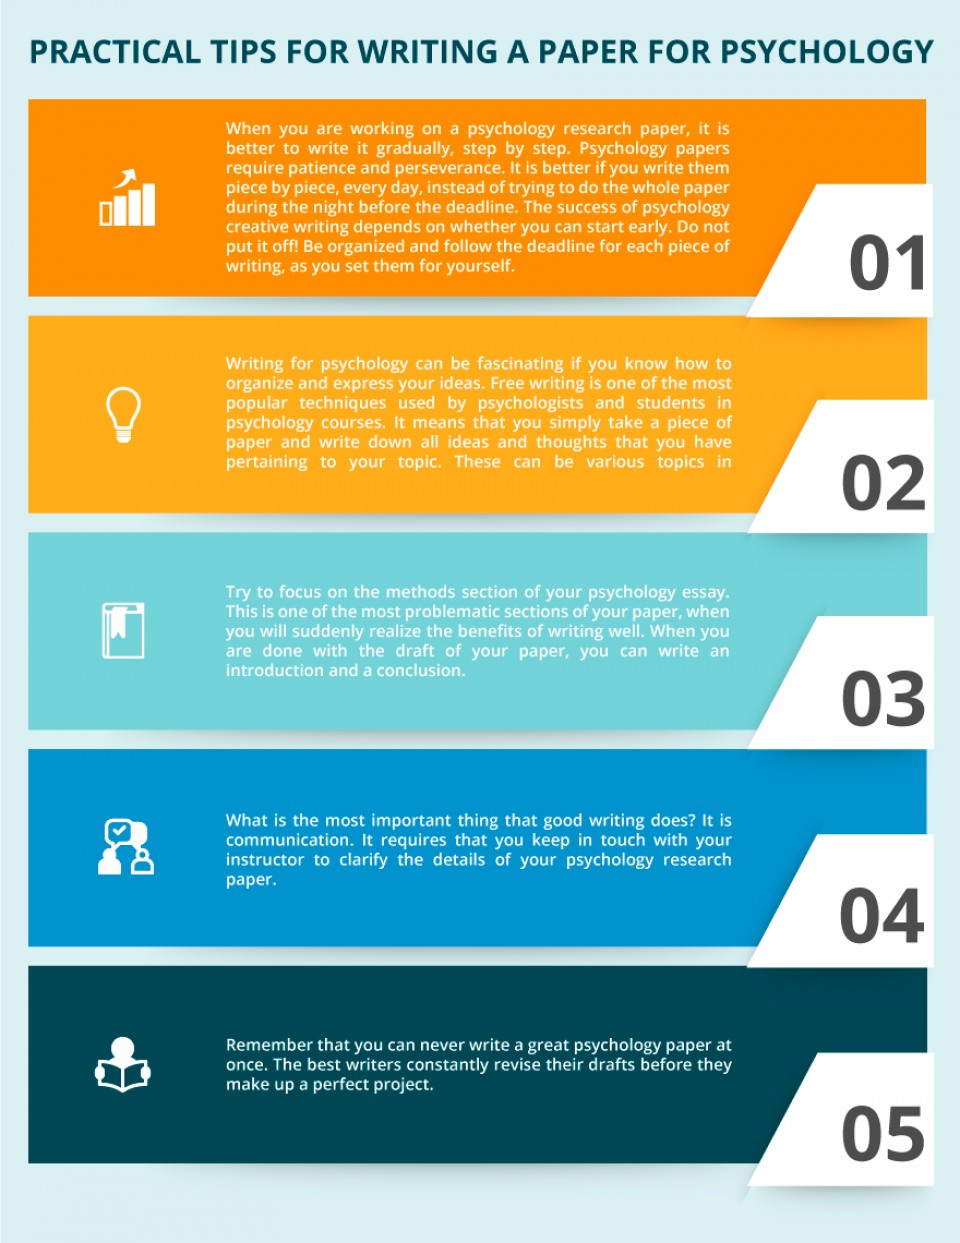 012 Research Paper Infographic Practical Tips For Writing Psychology How To Write Good Unusual A Fast Youtube Reddit 960